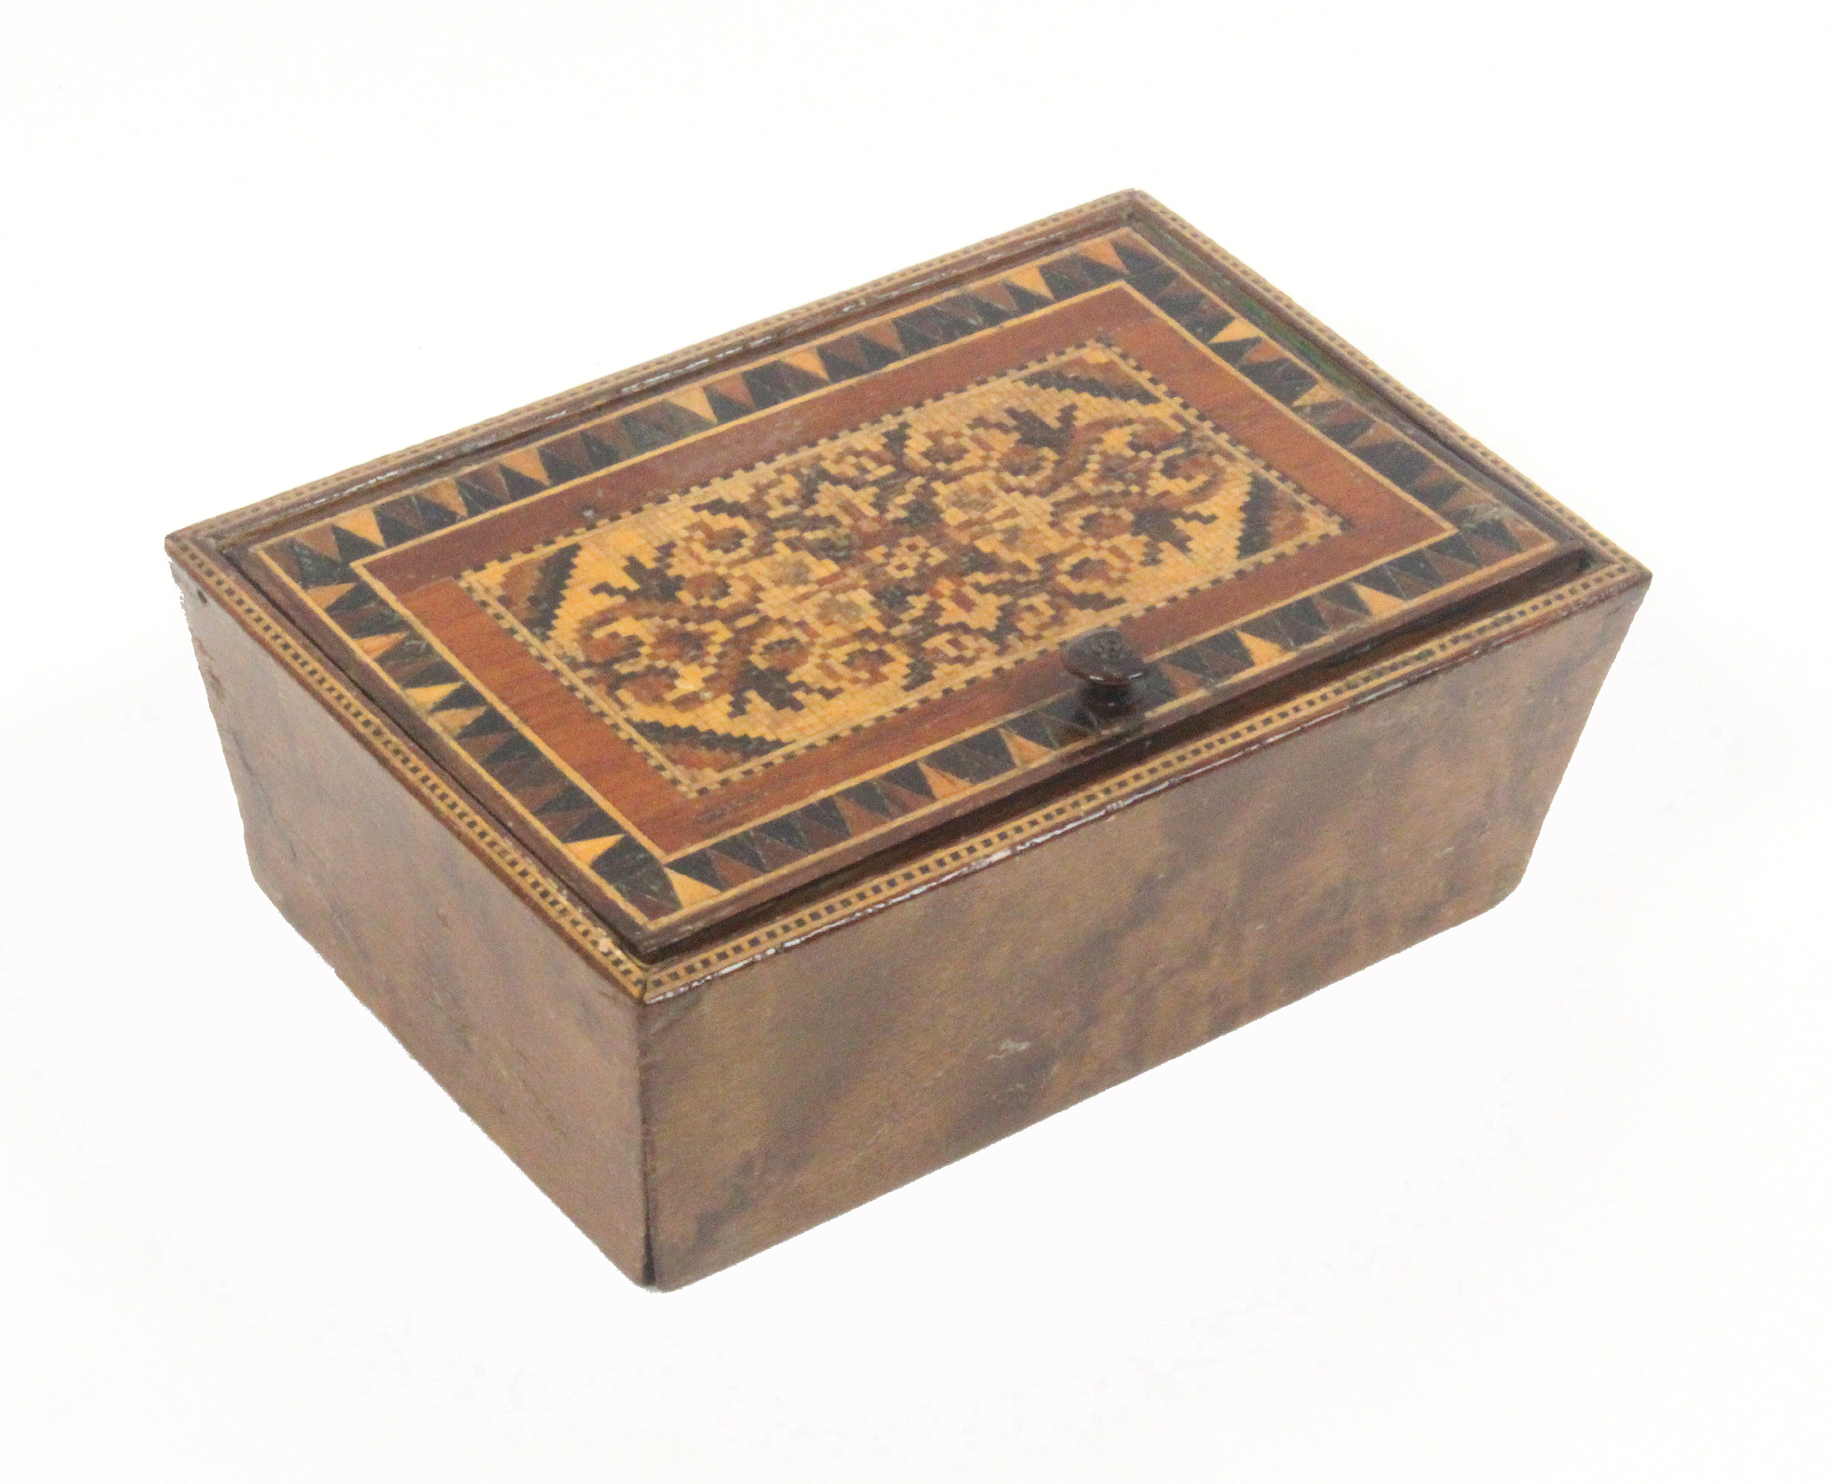 Lot 58 - A Tunbridge ware box of rectangular form, with angled burr veneered sides, the pin hinge lid with